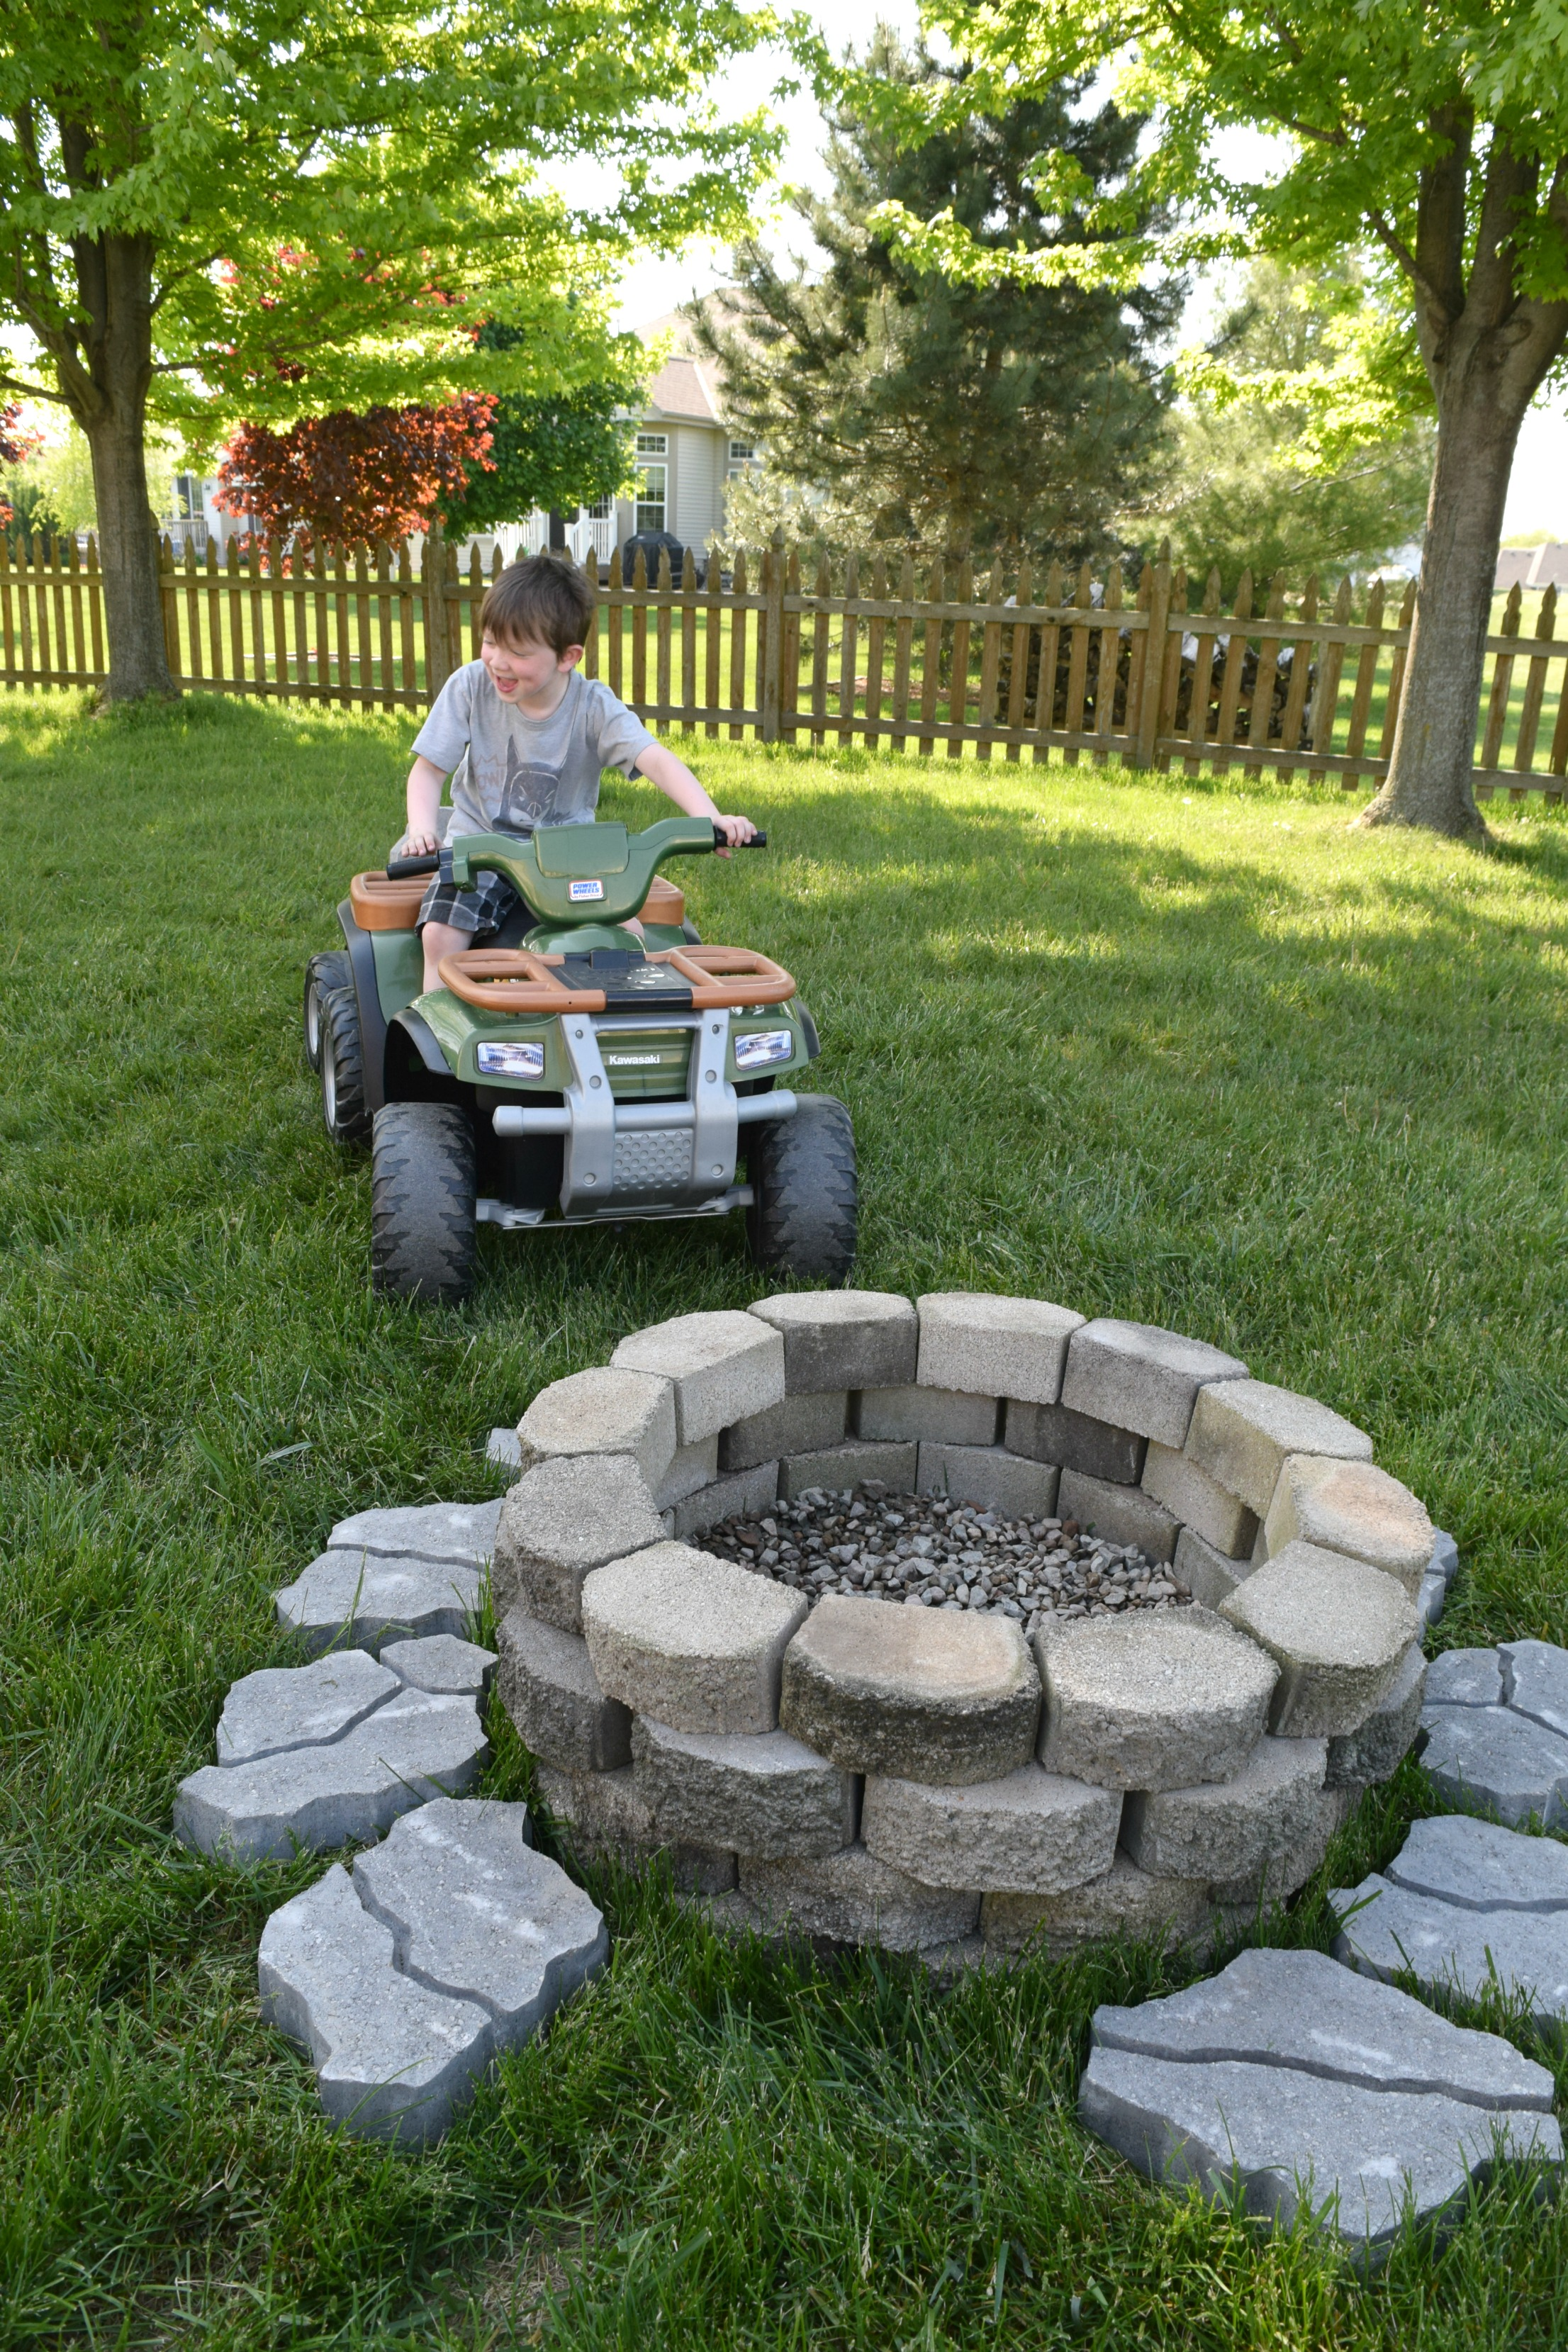 DIY fire pit for the backyard • Our House Now a Home